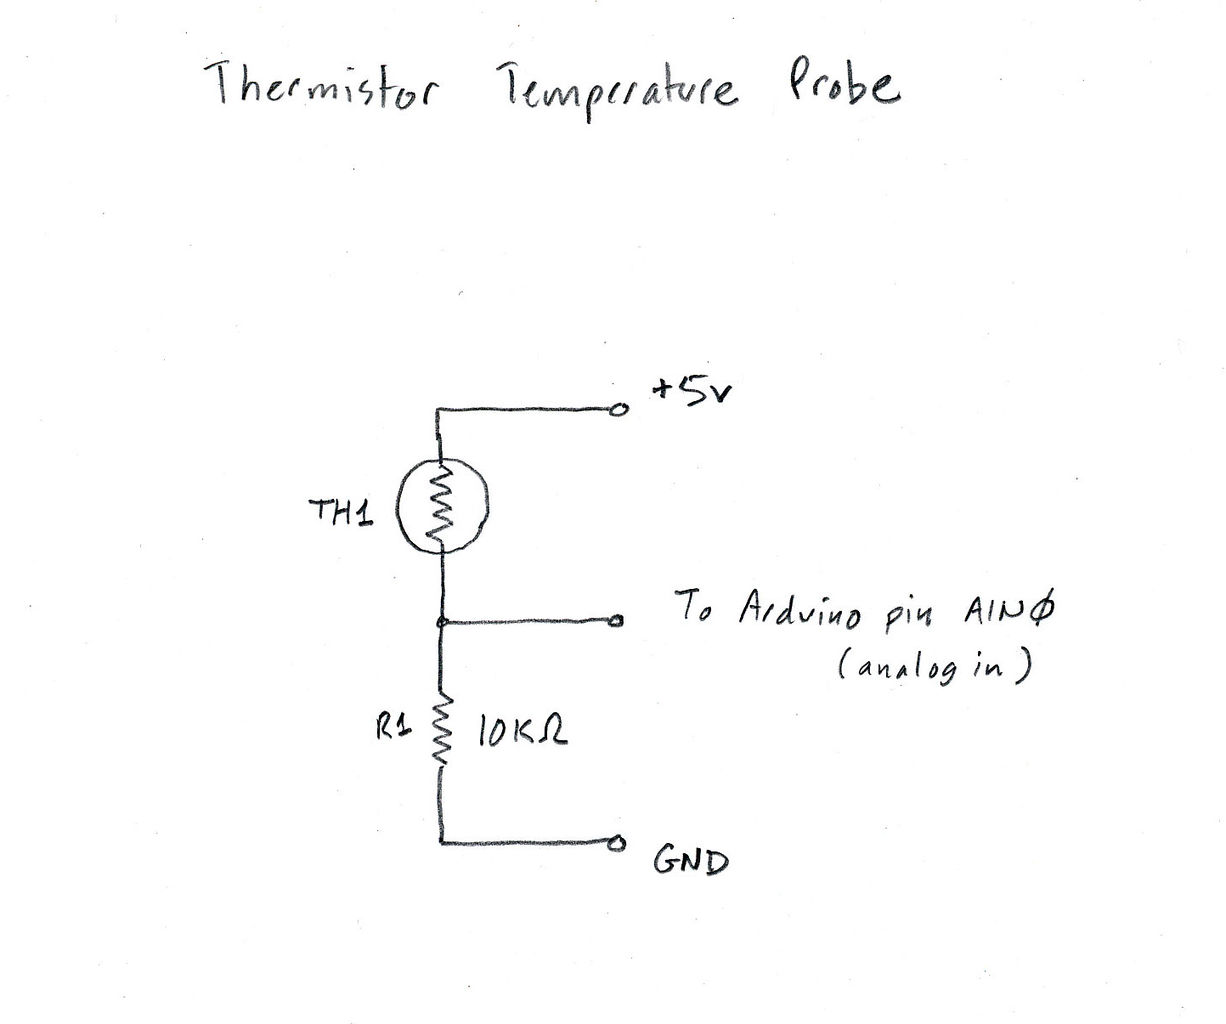 thermistor symbol electrical diagram rv slide for wiring schematic